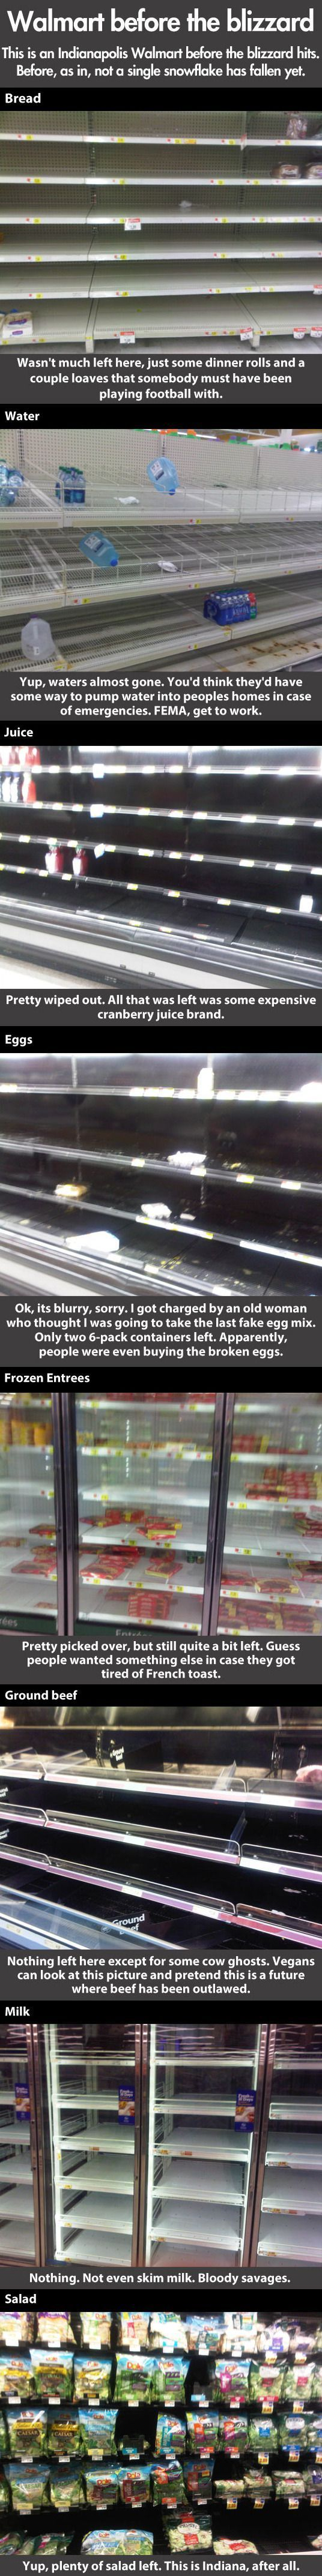 awesome Walmart before the blizzard... by http://dezdemonhumoraddiction.space/walmart-humor/walmart-before-the-blizzard/